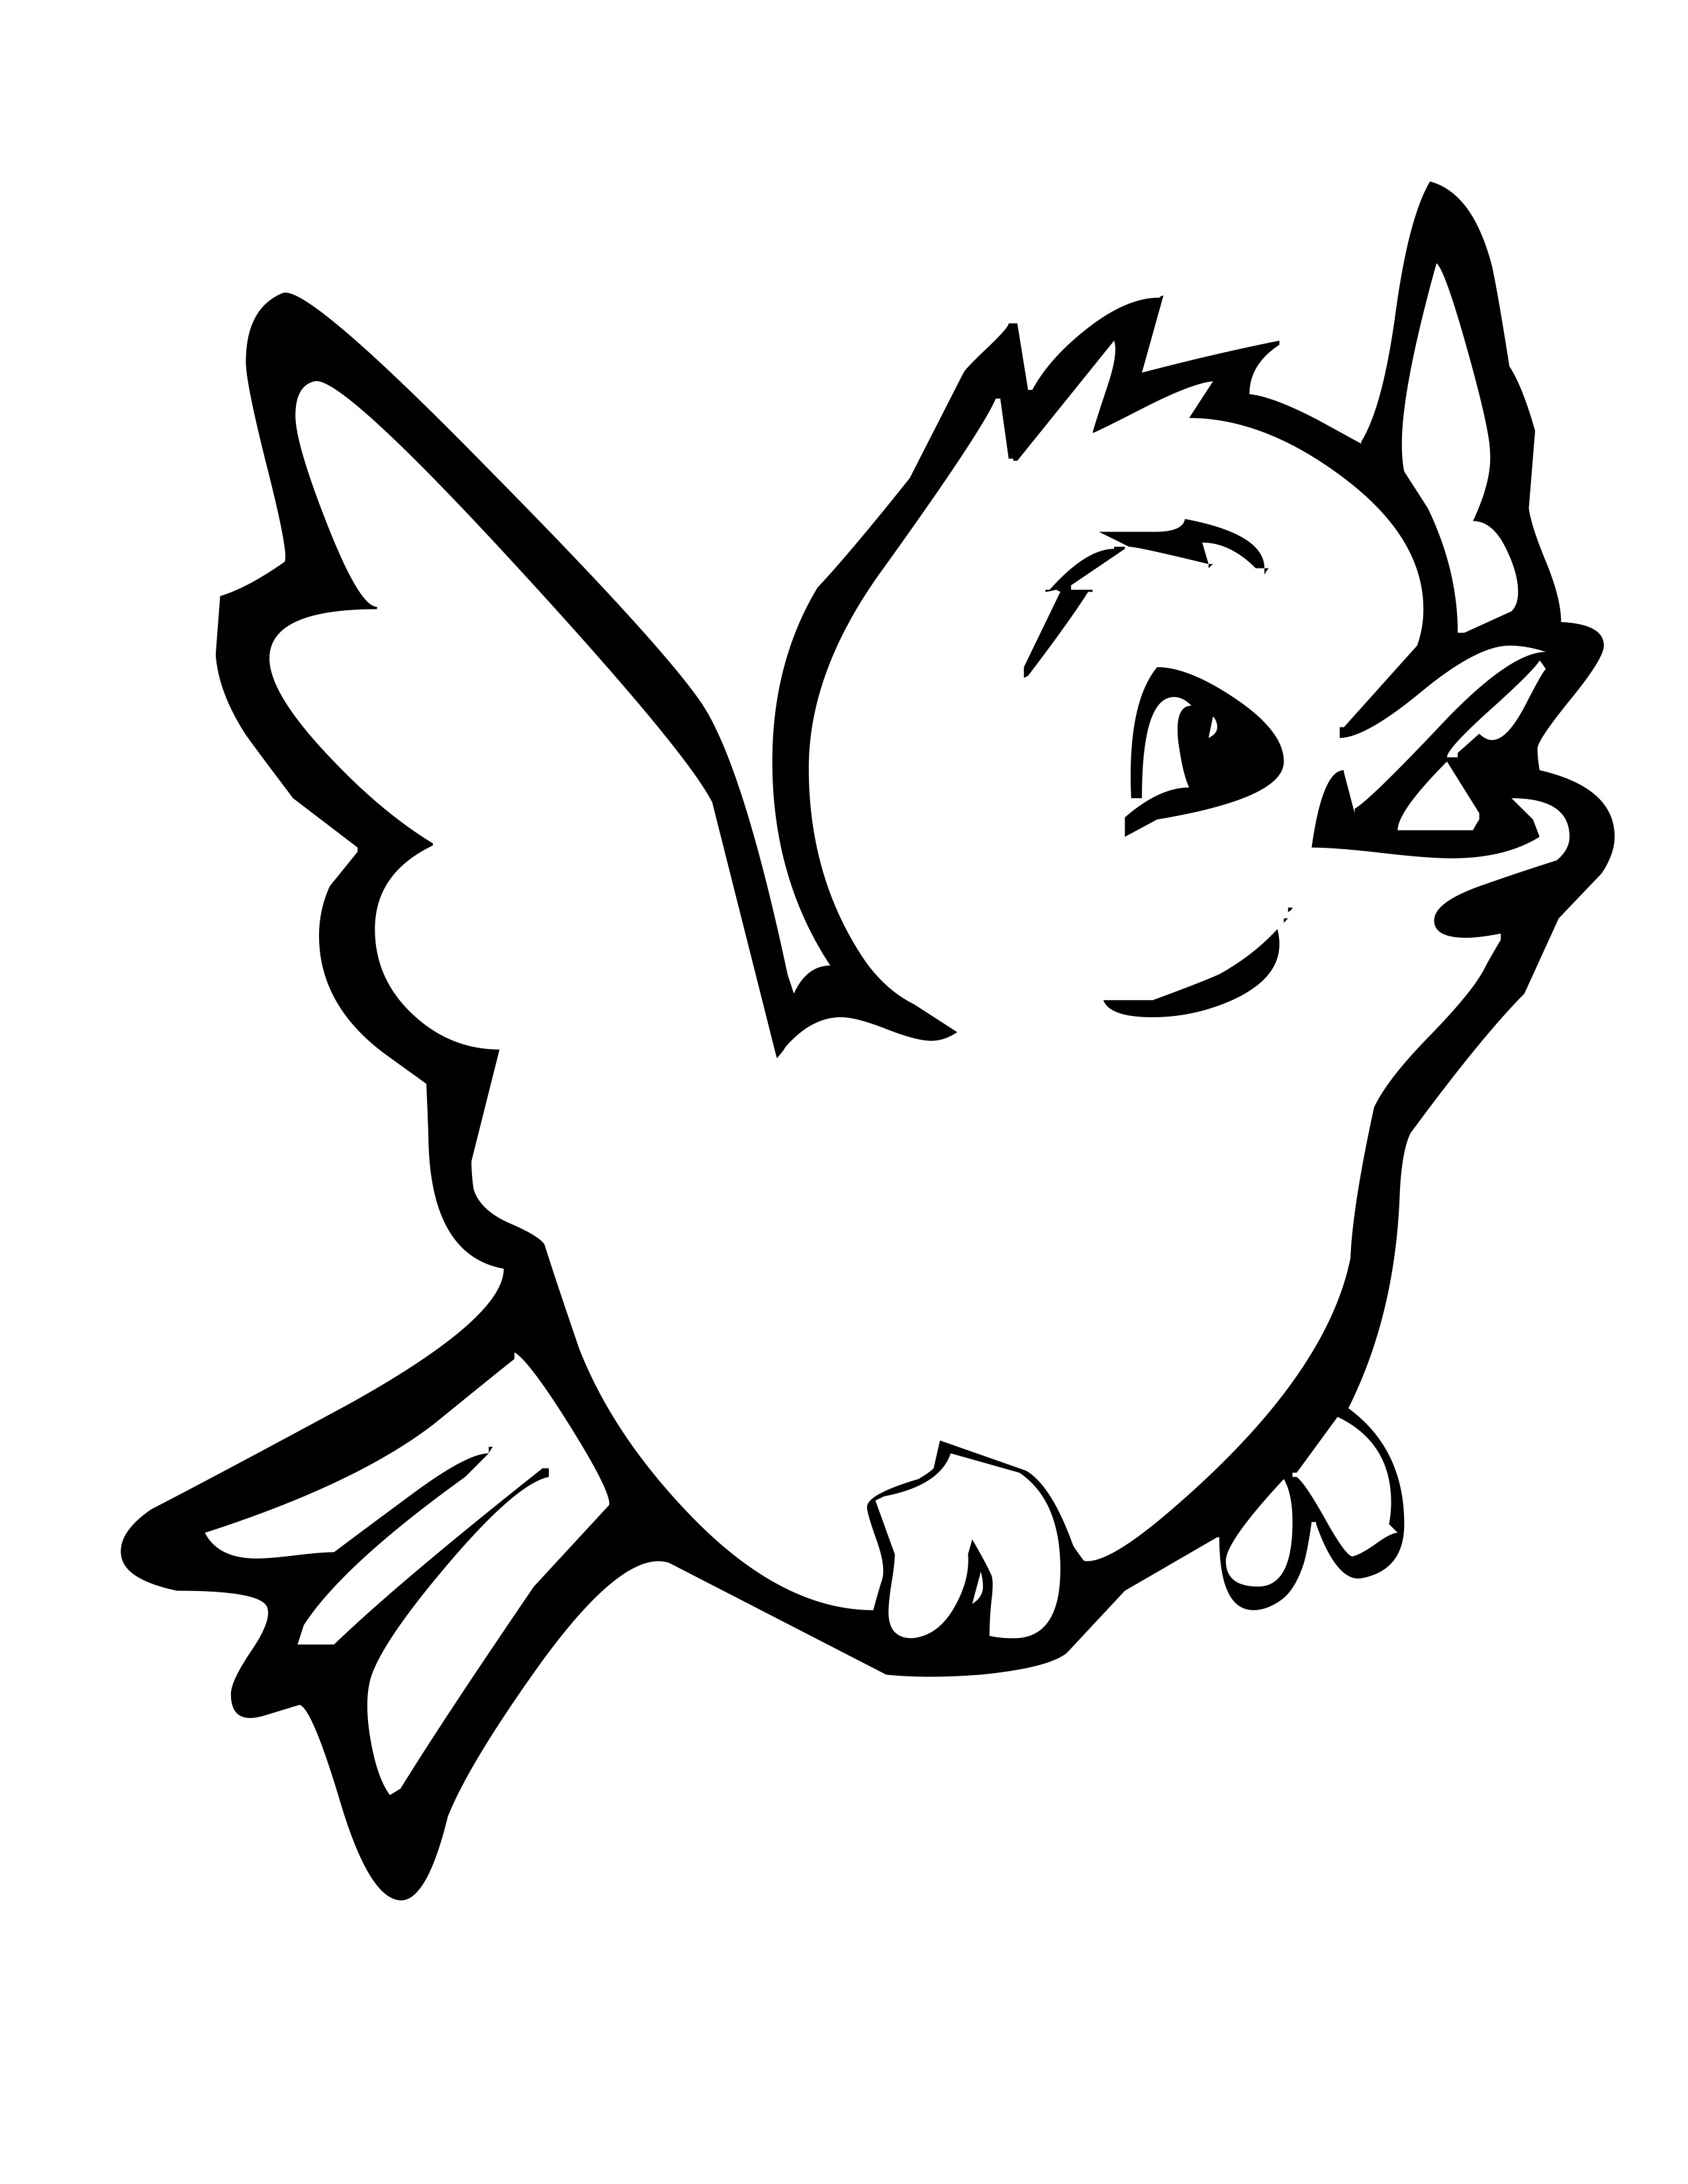 kids coloring pages birds - photo#11